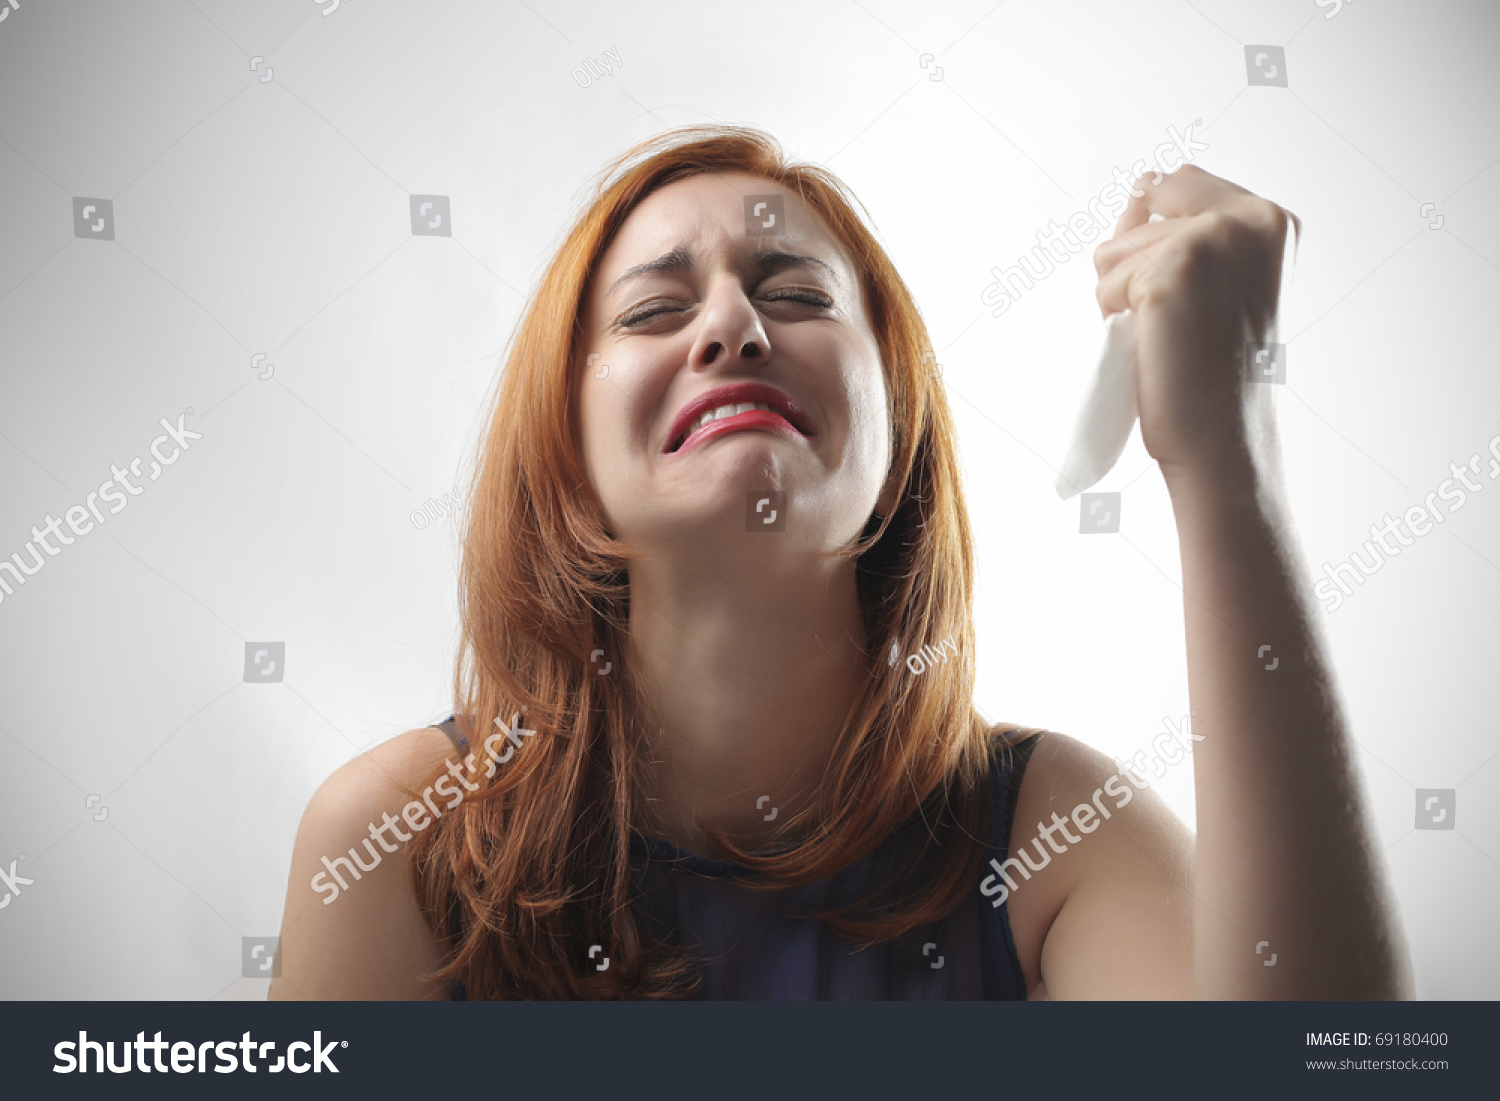 crying woman stock photo sad woman crying stock photo 69180400 shutterstock 711